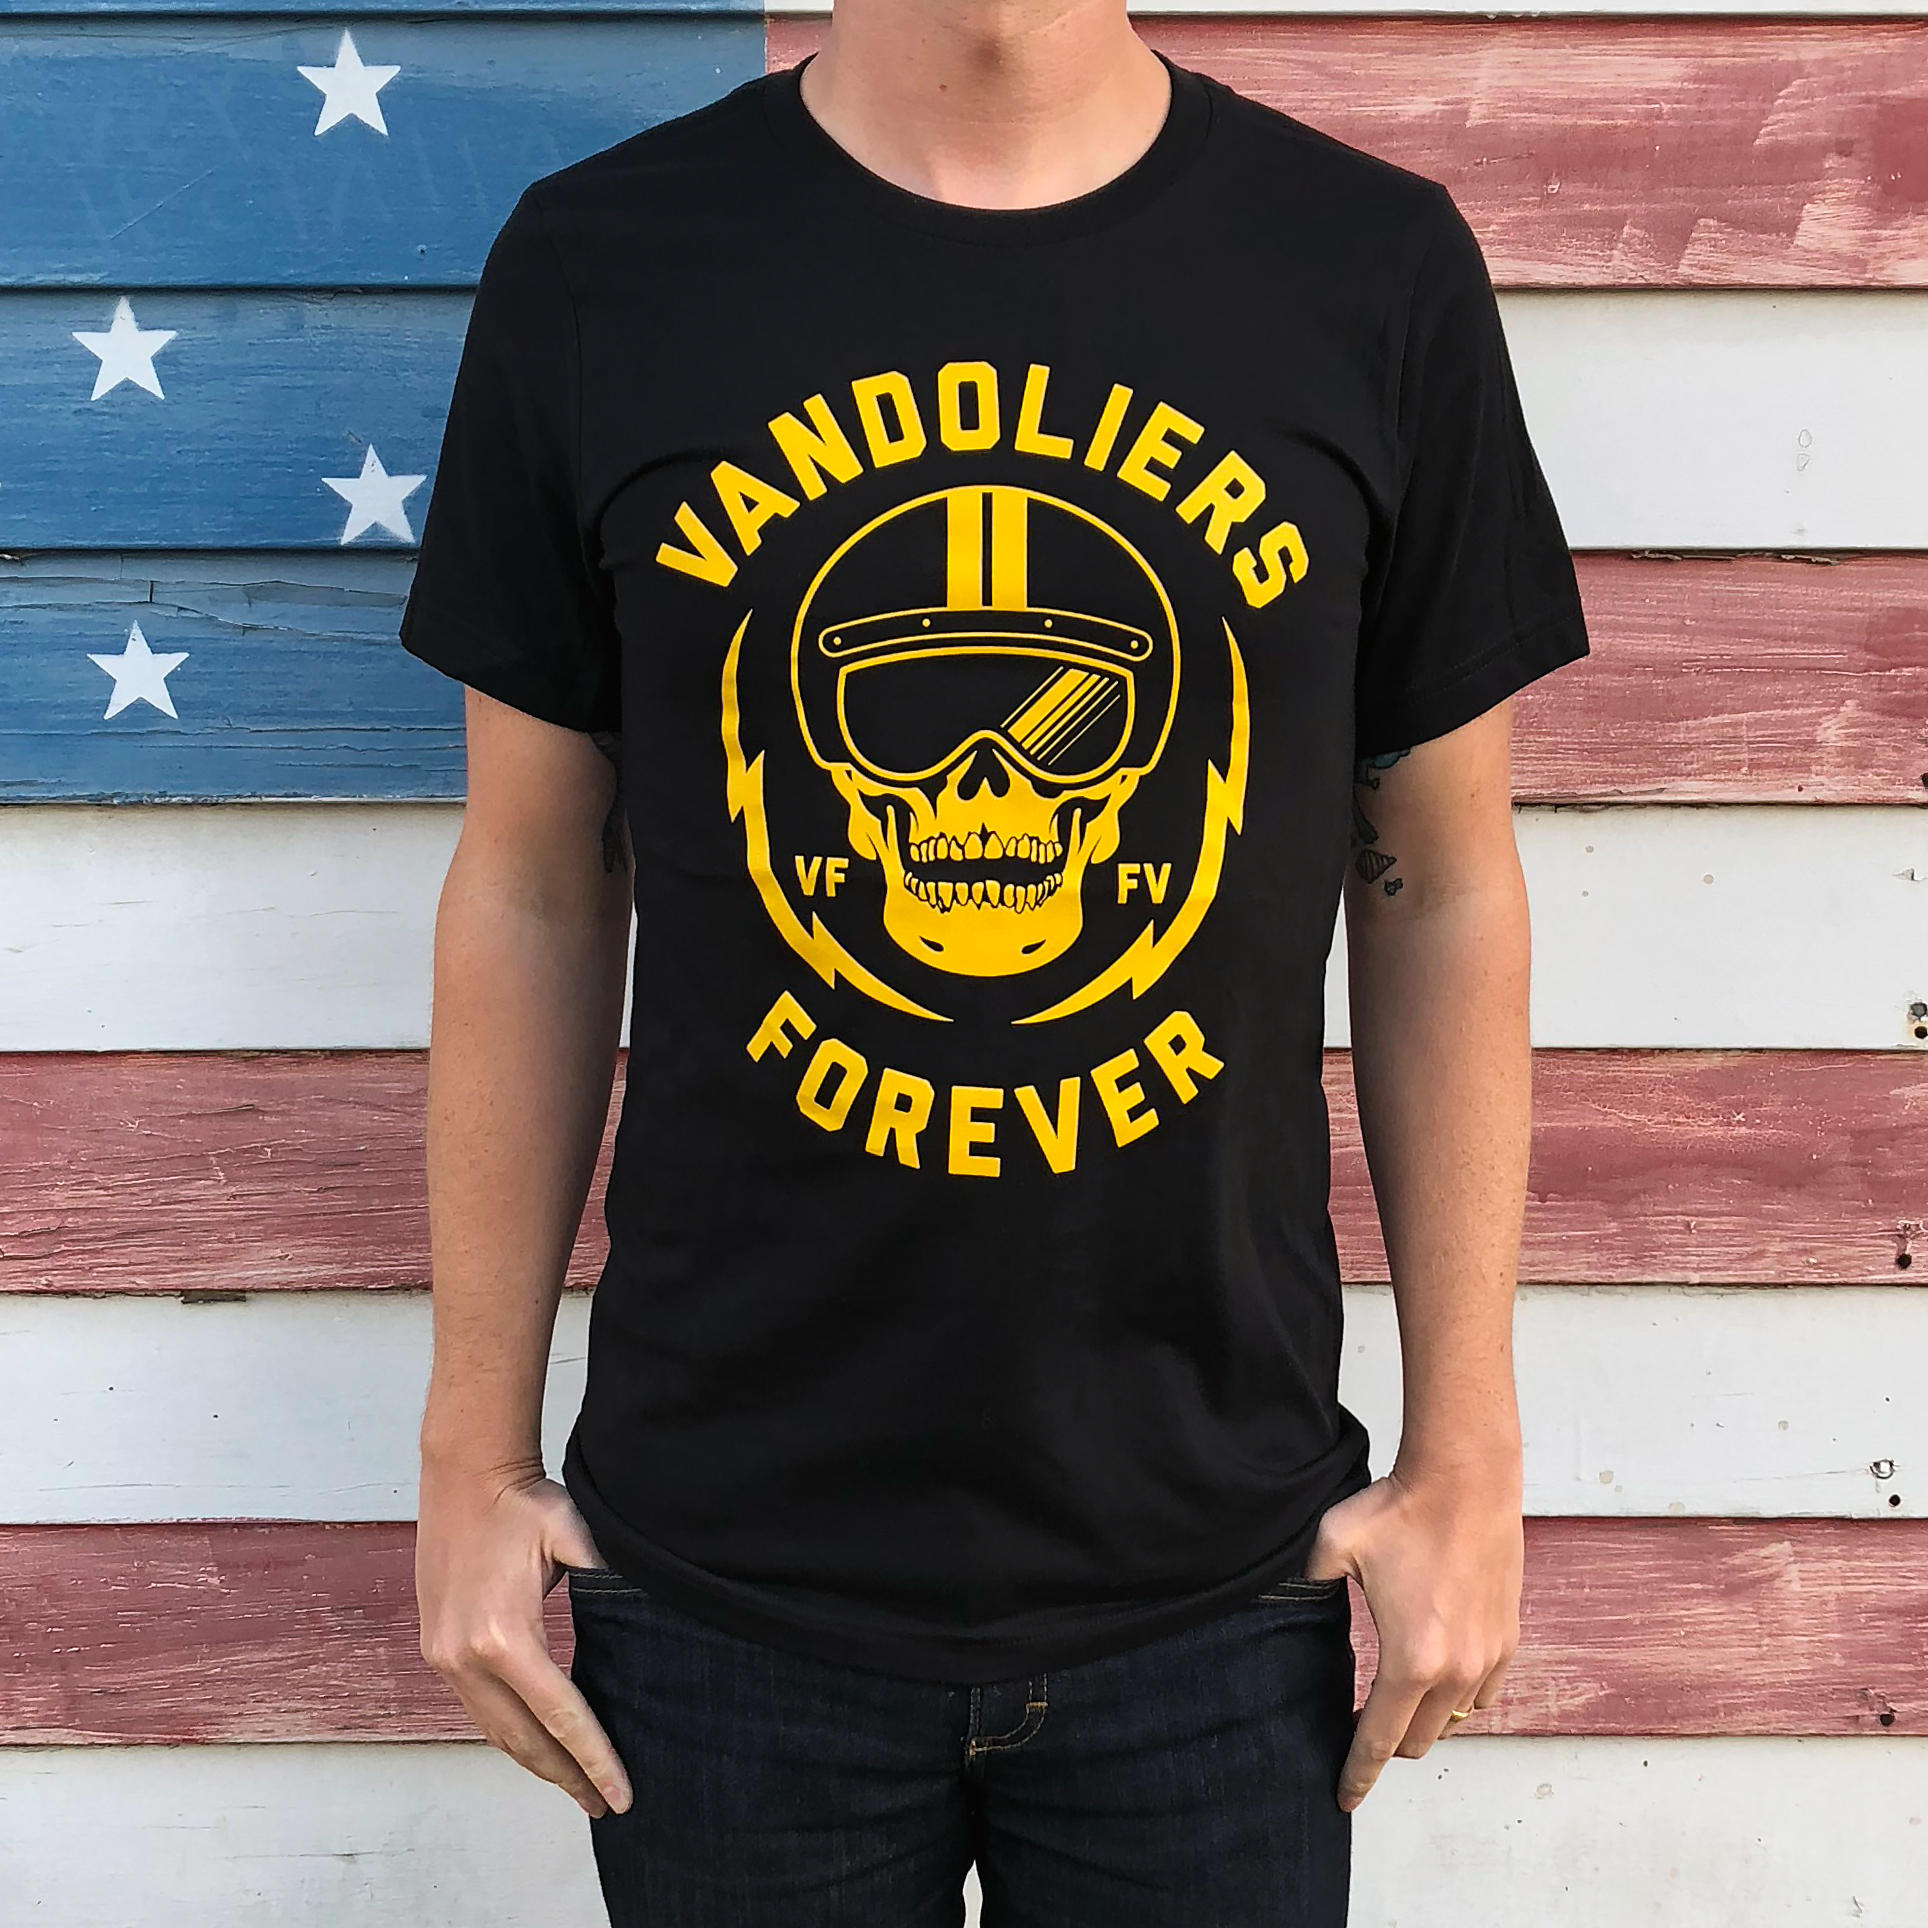 Vandoliers Forever T-Shirt Bloodshot Records